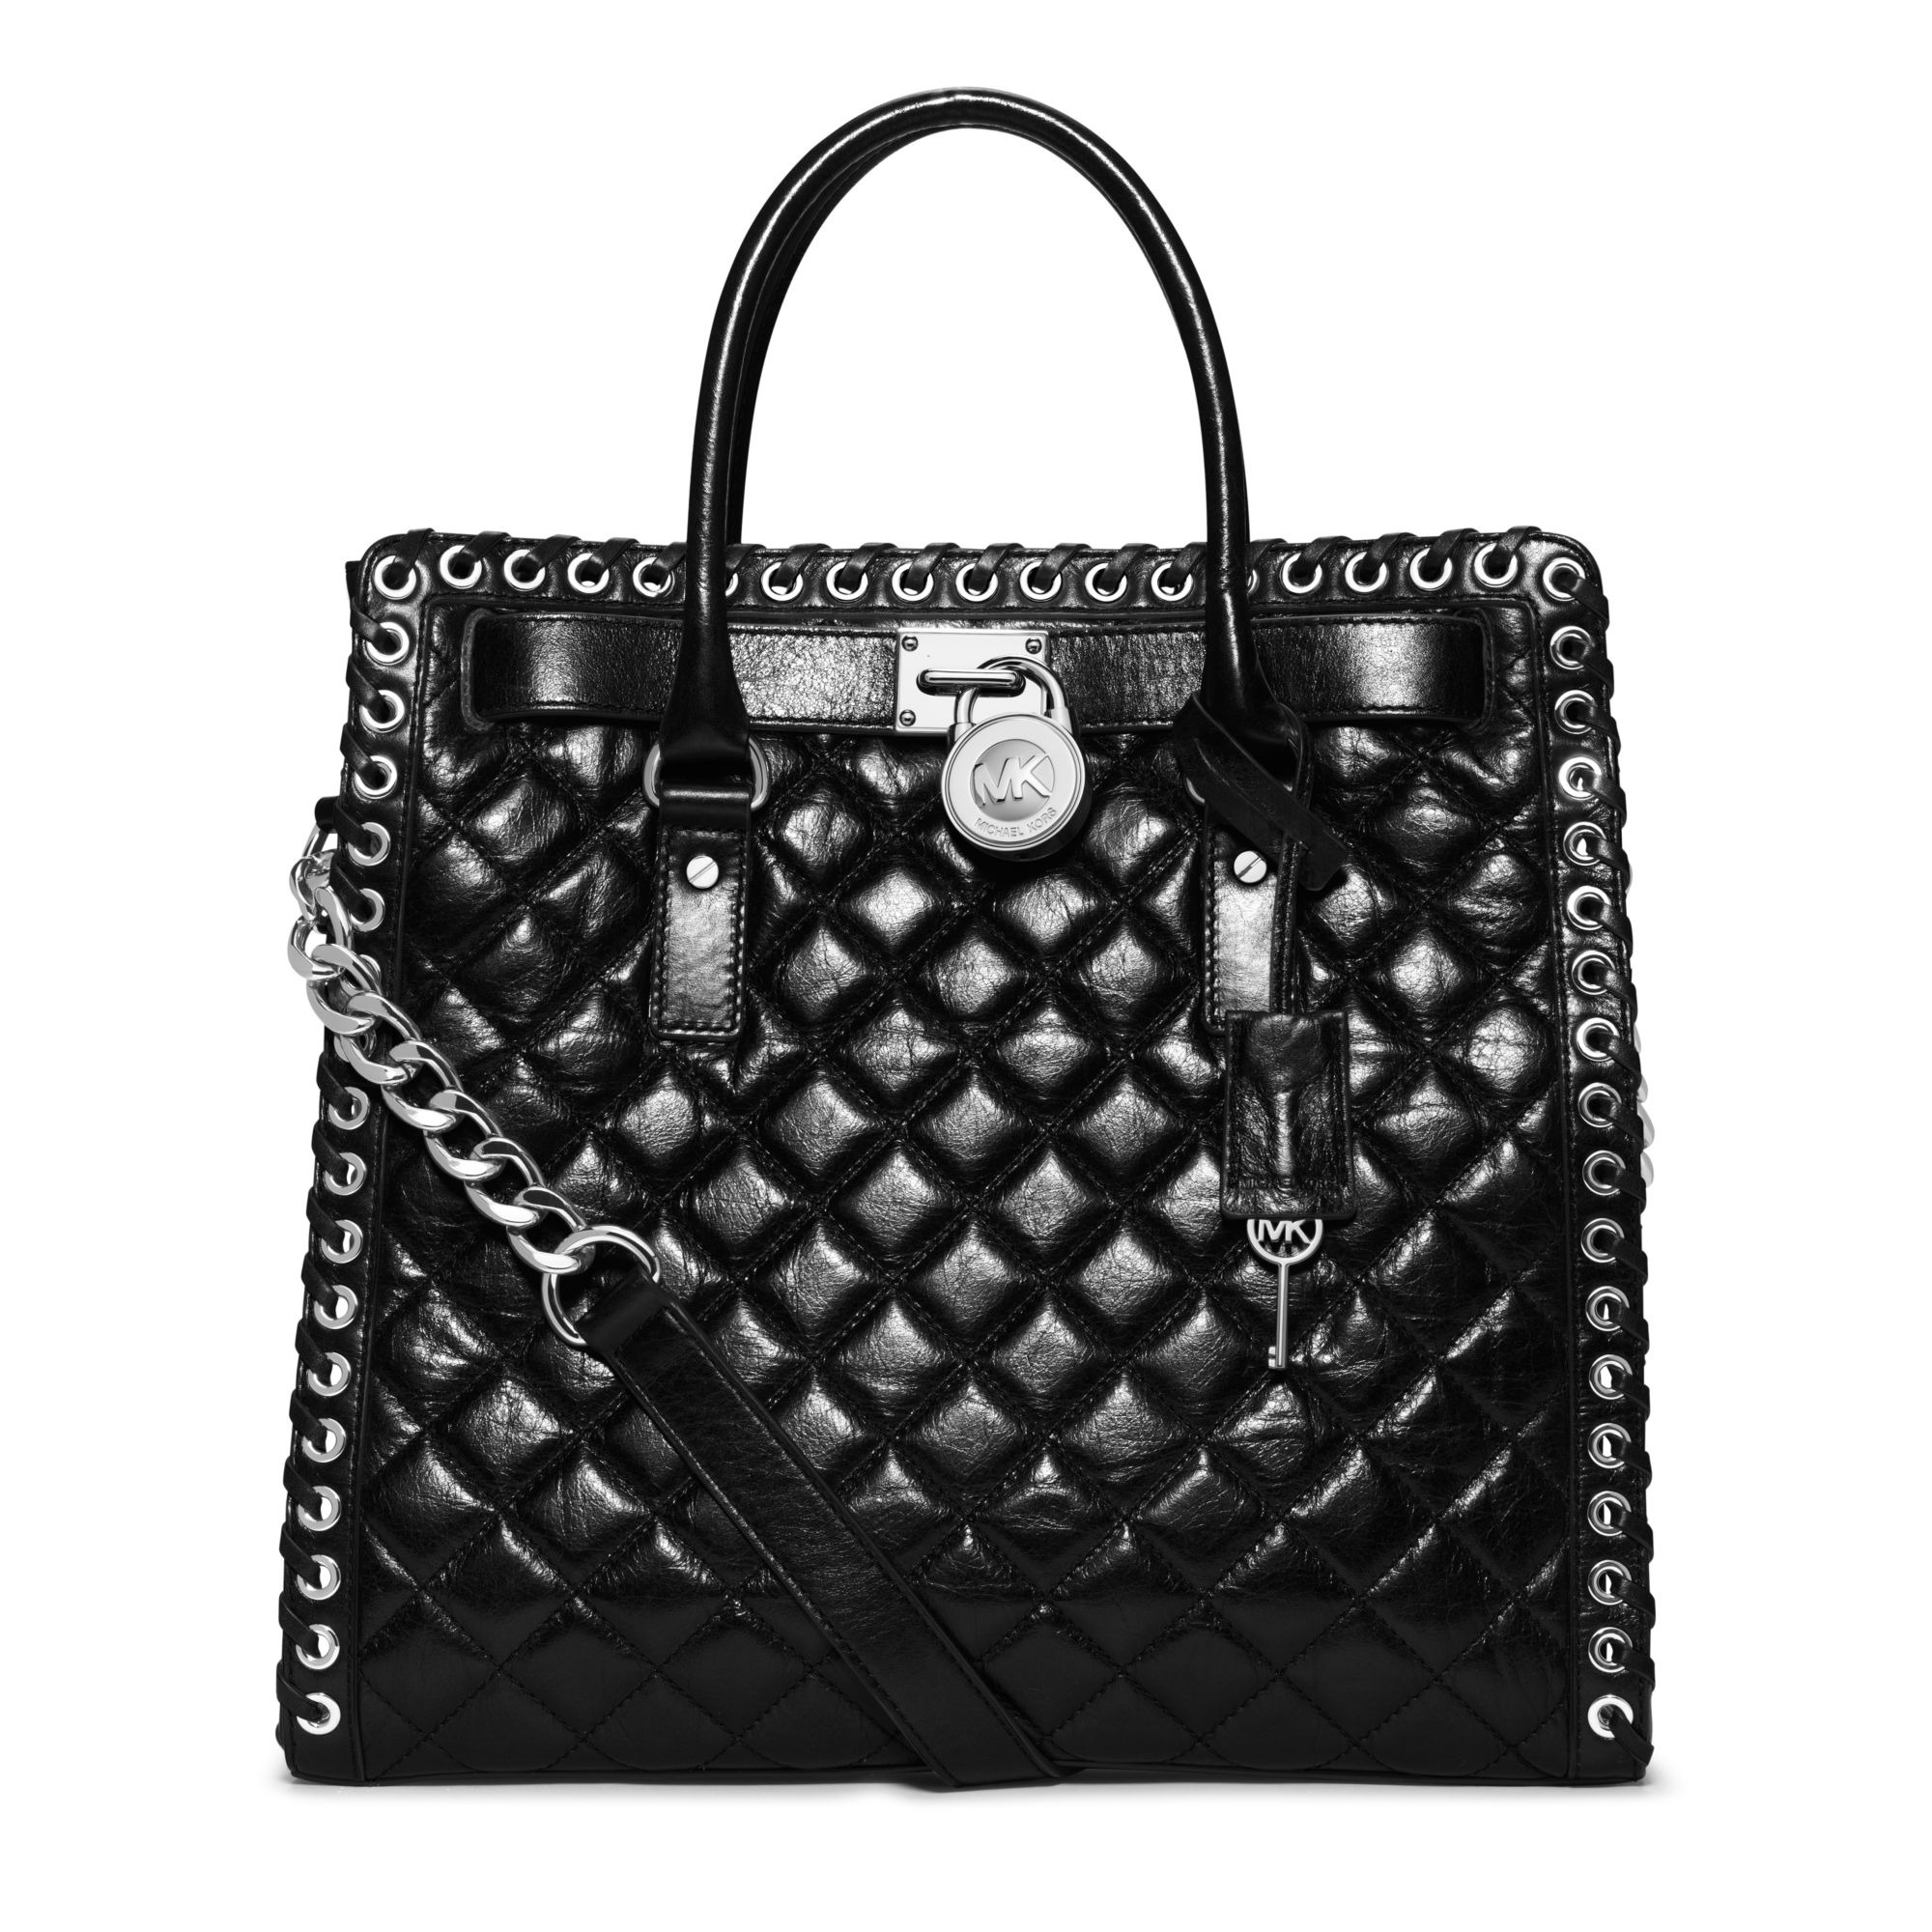 Michael kors bags in dubai - Gallery Women S Michael Kors Quilted Bag